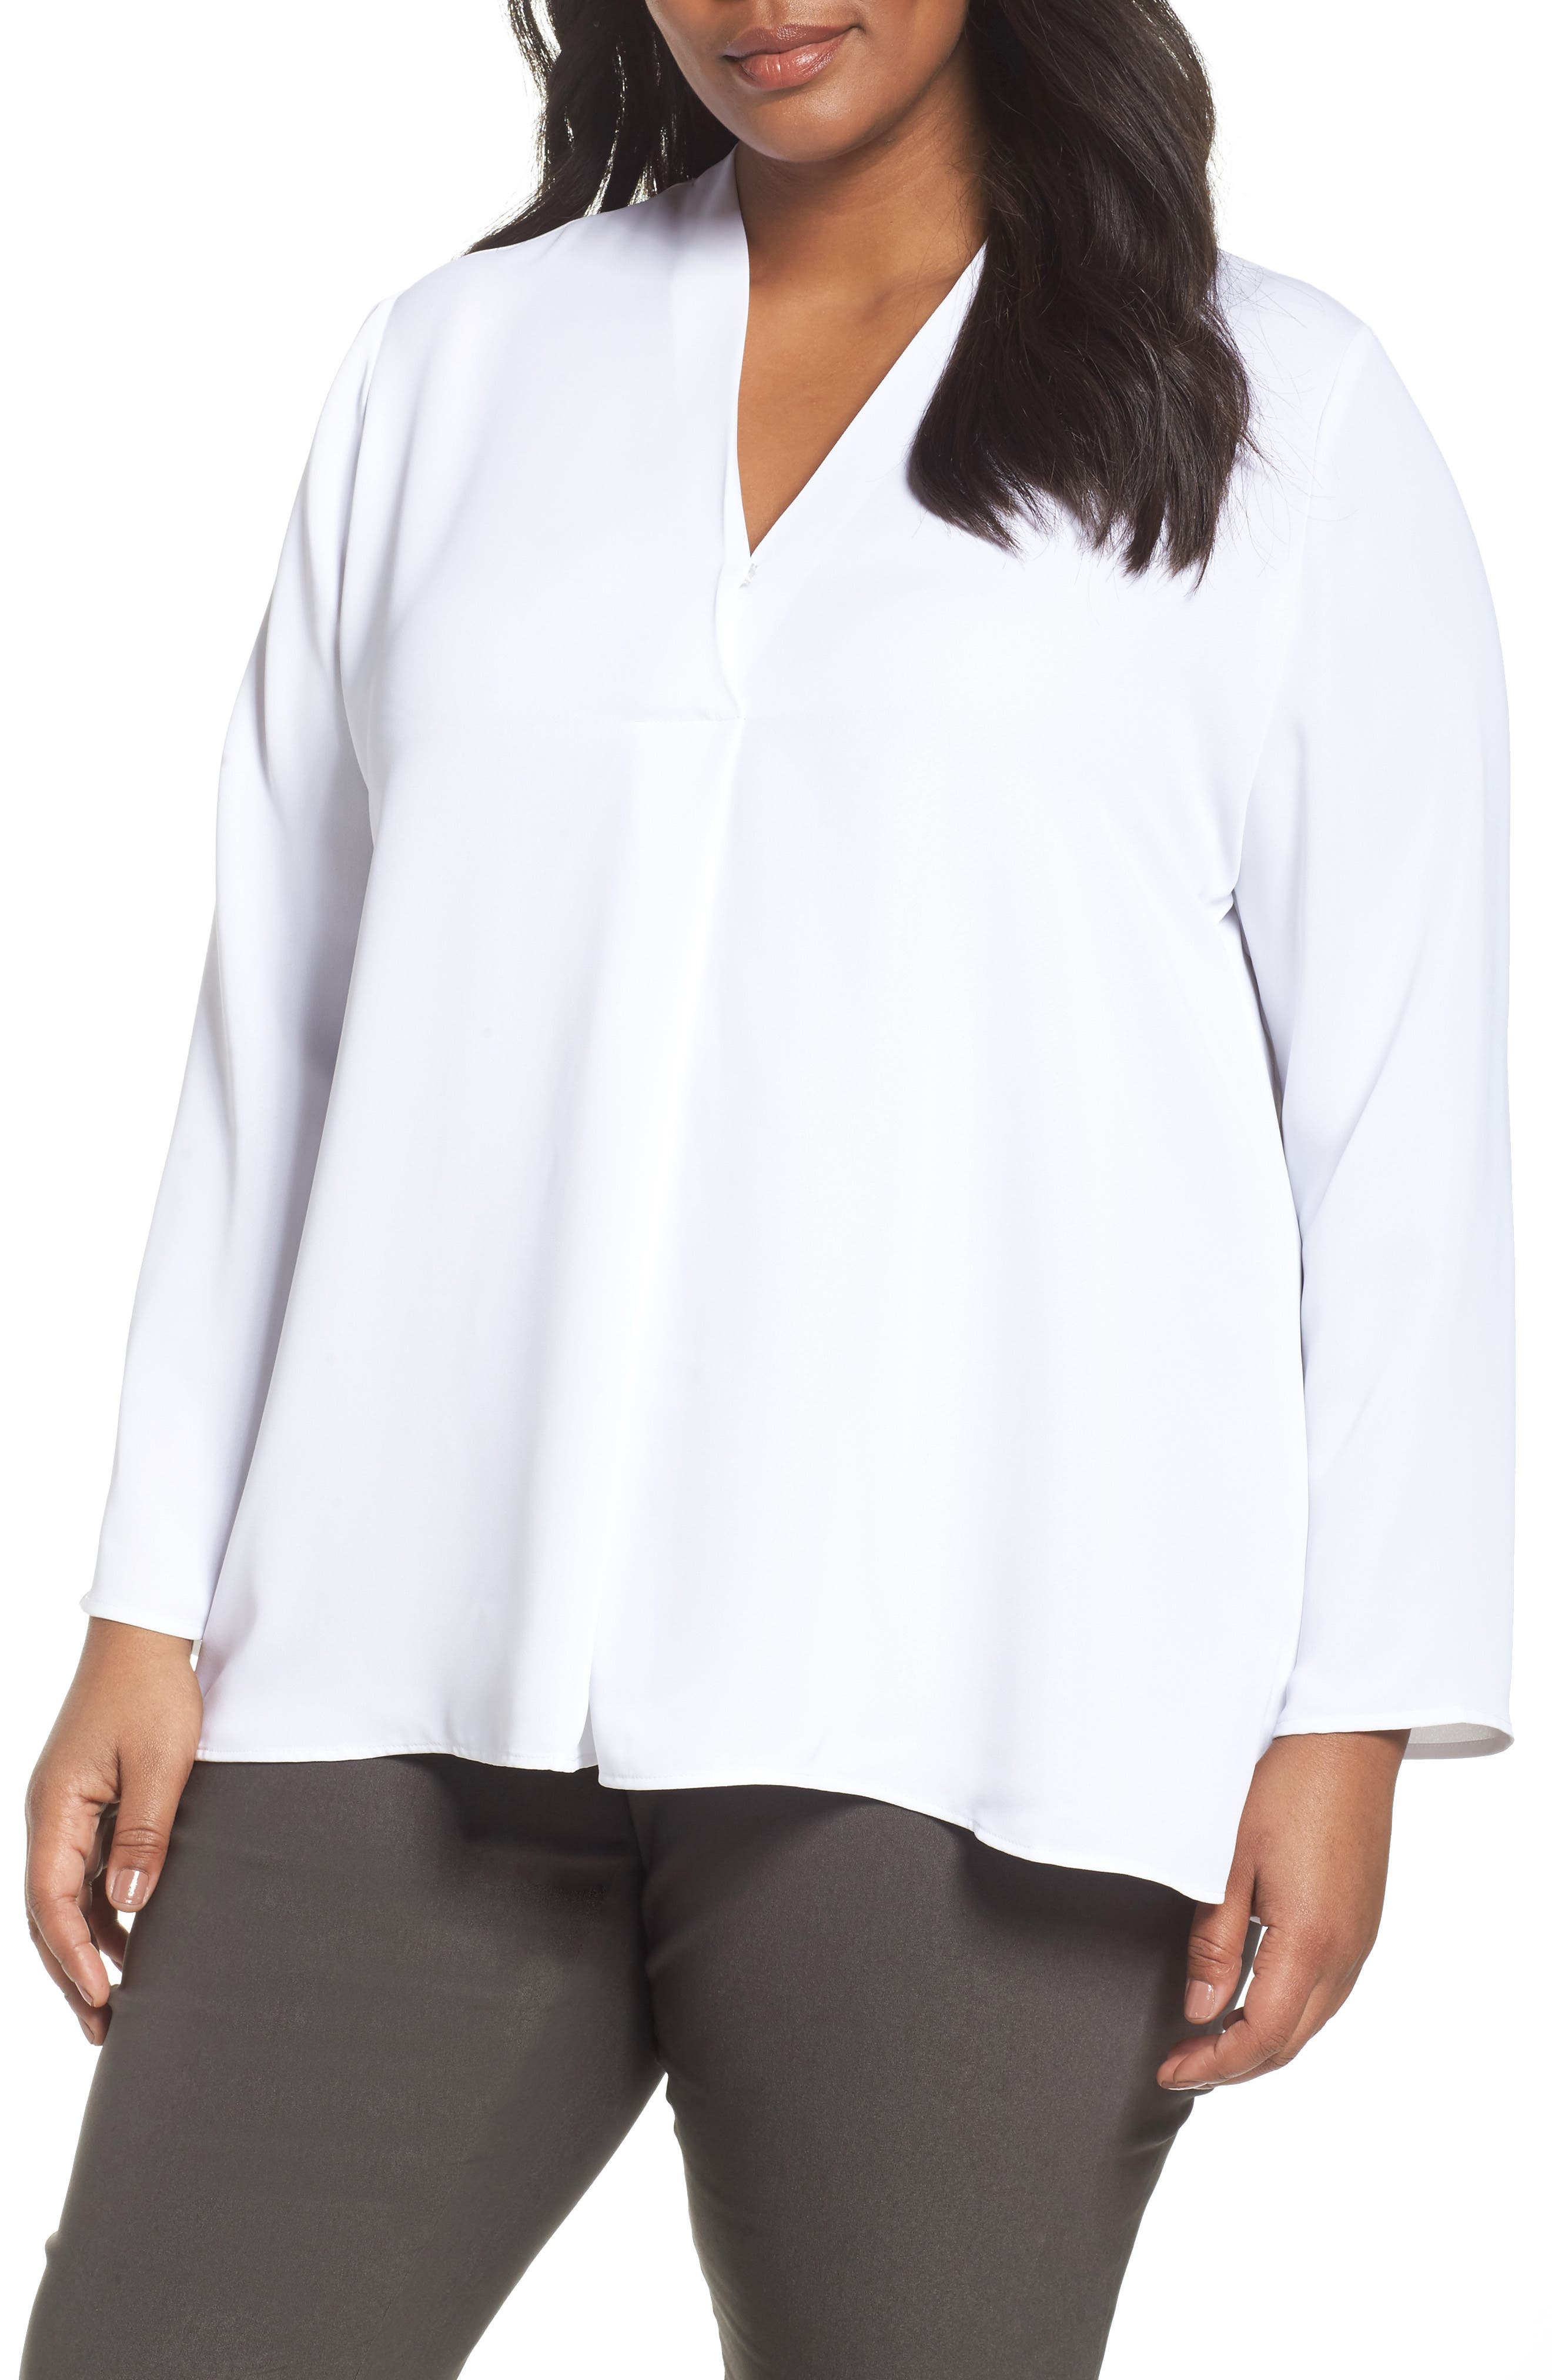 Main Image - NIC+ZOE Majestic Matte Satin Blouse (Plus Size)